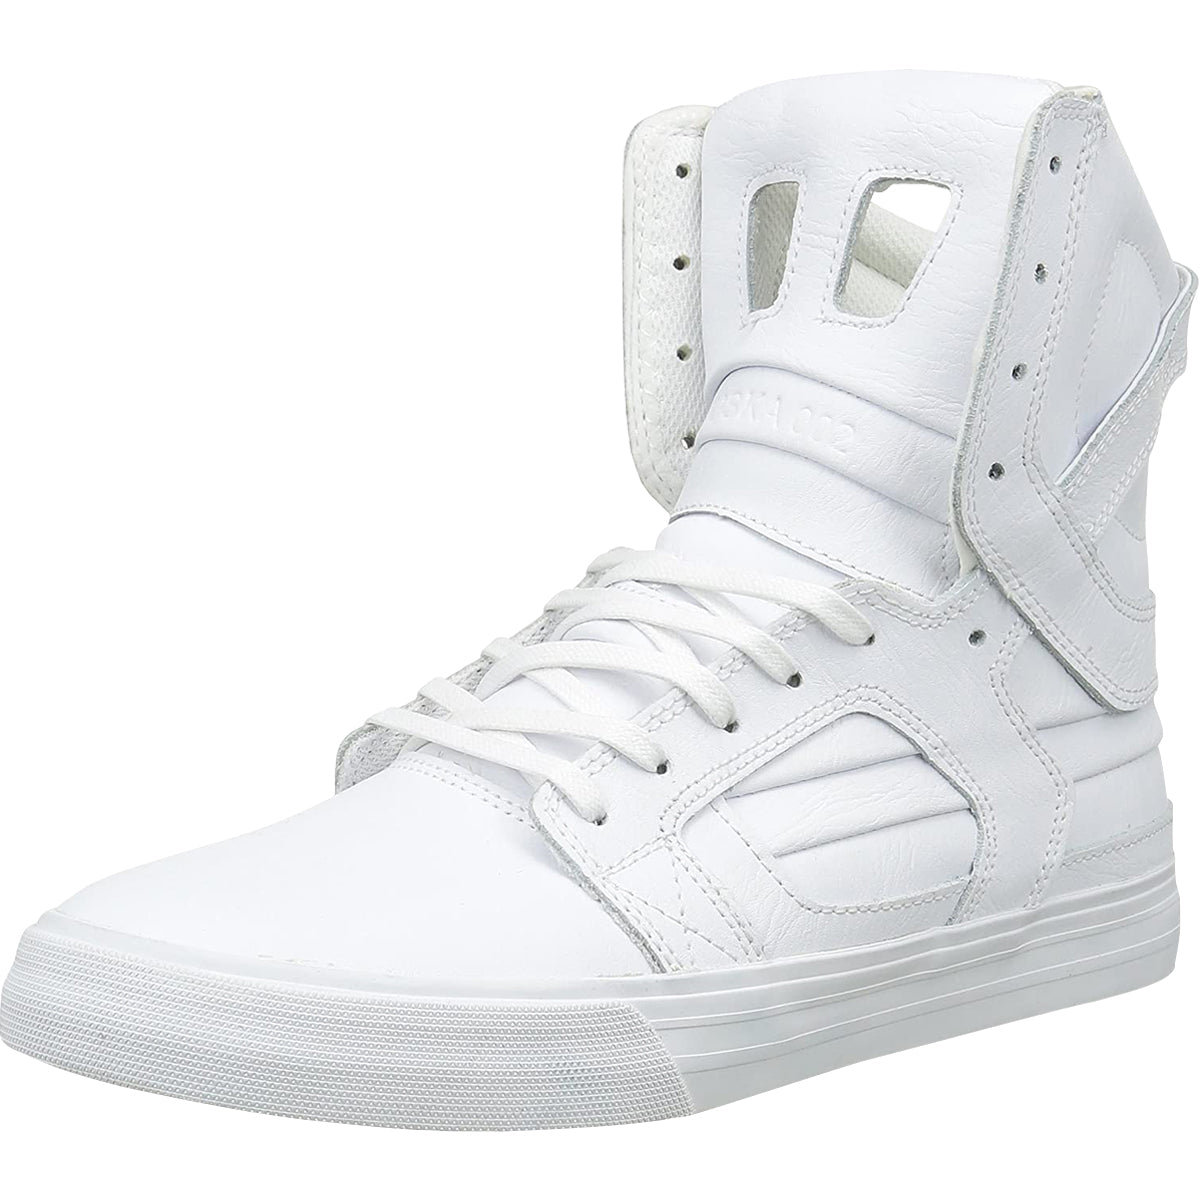 Supra Skytop II Men's Shoes Footwear-S01060